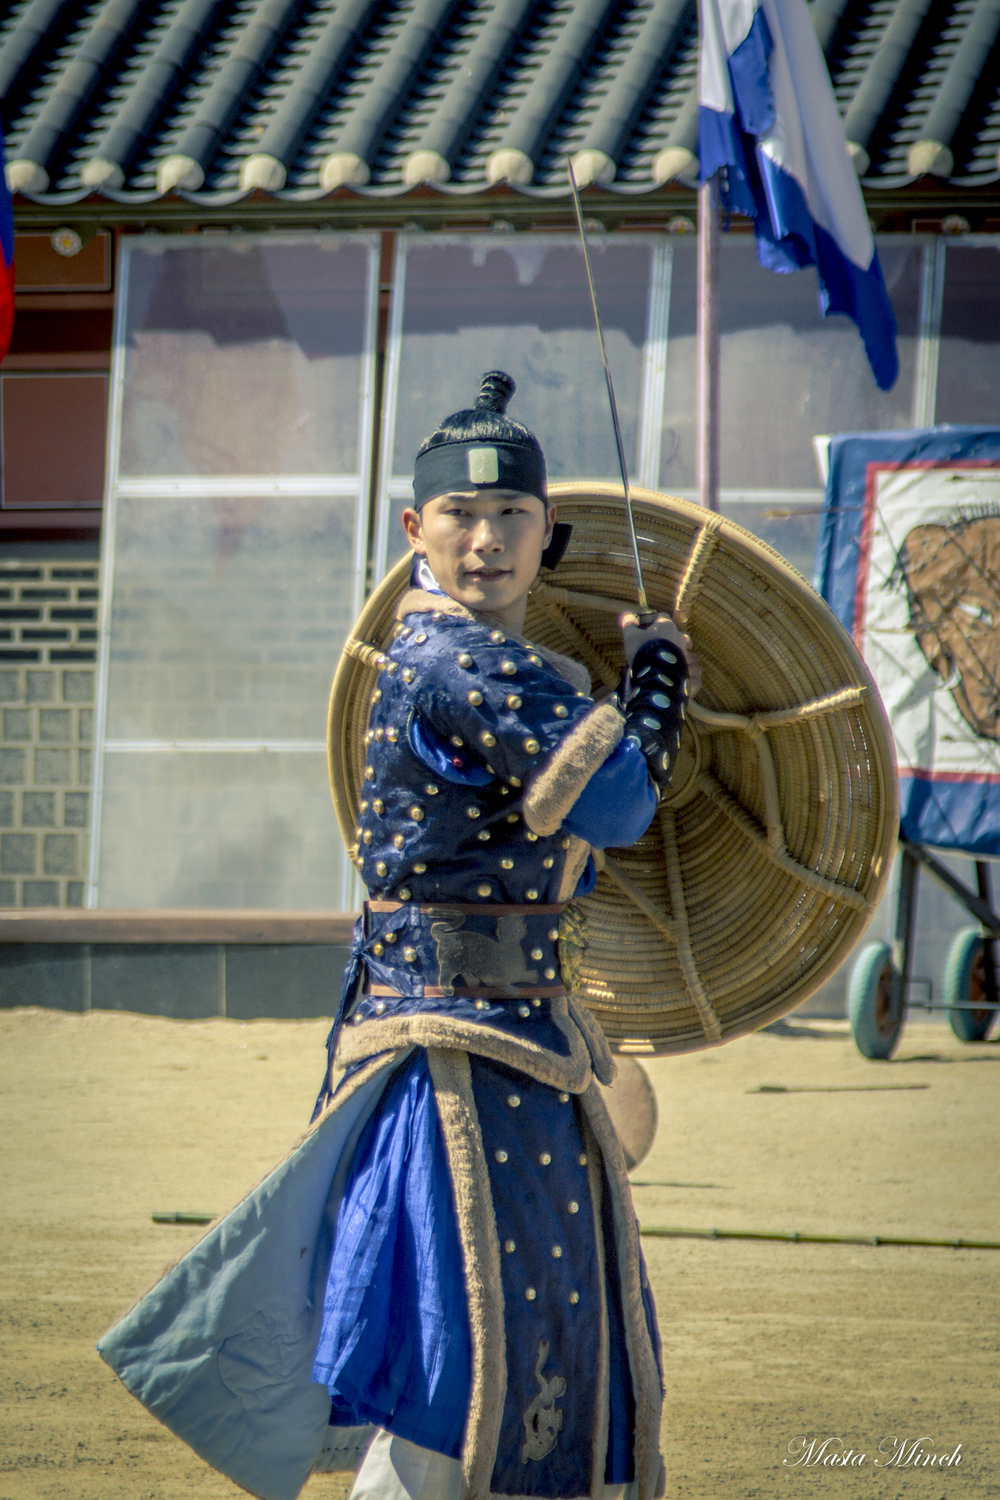 A martial artist dressed up as one of the King's Guards demonstrating the 24 Martial Arts